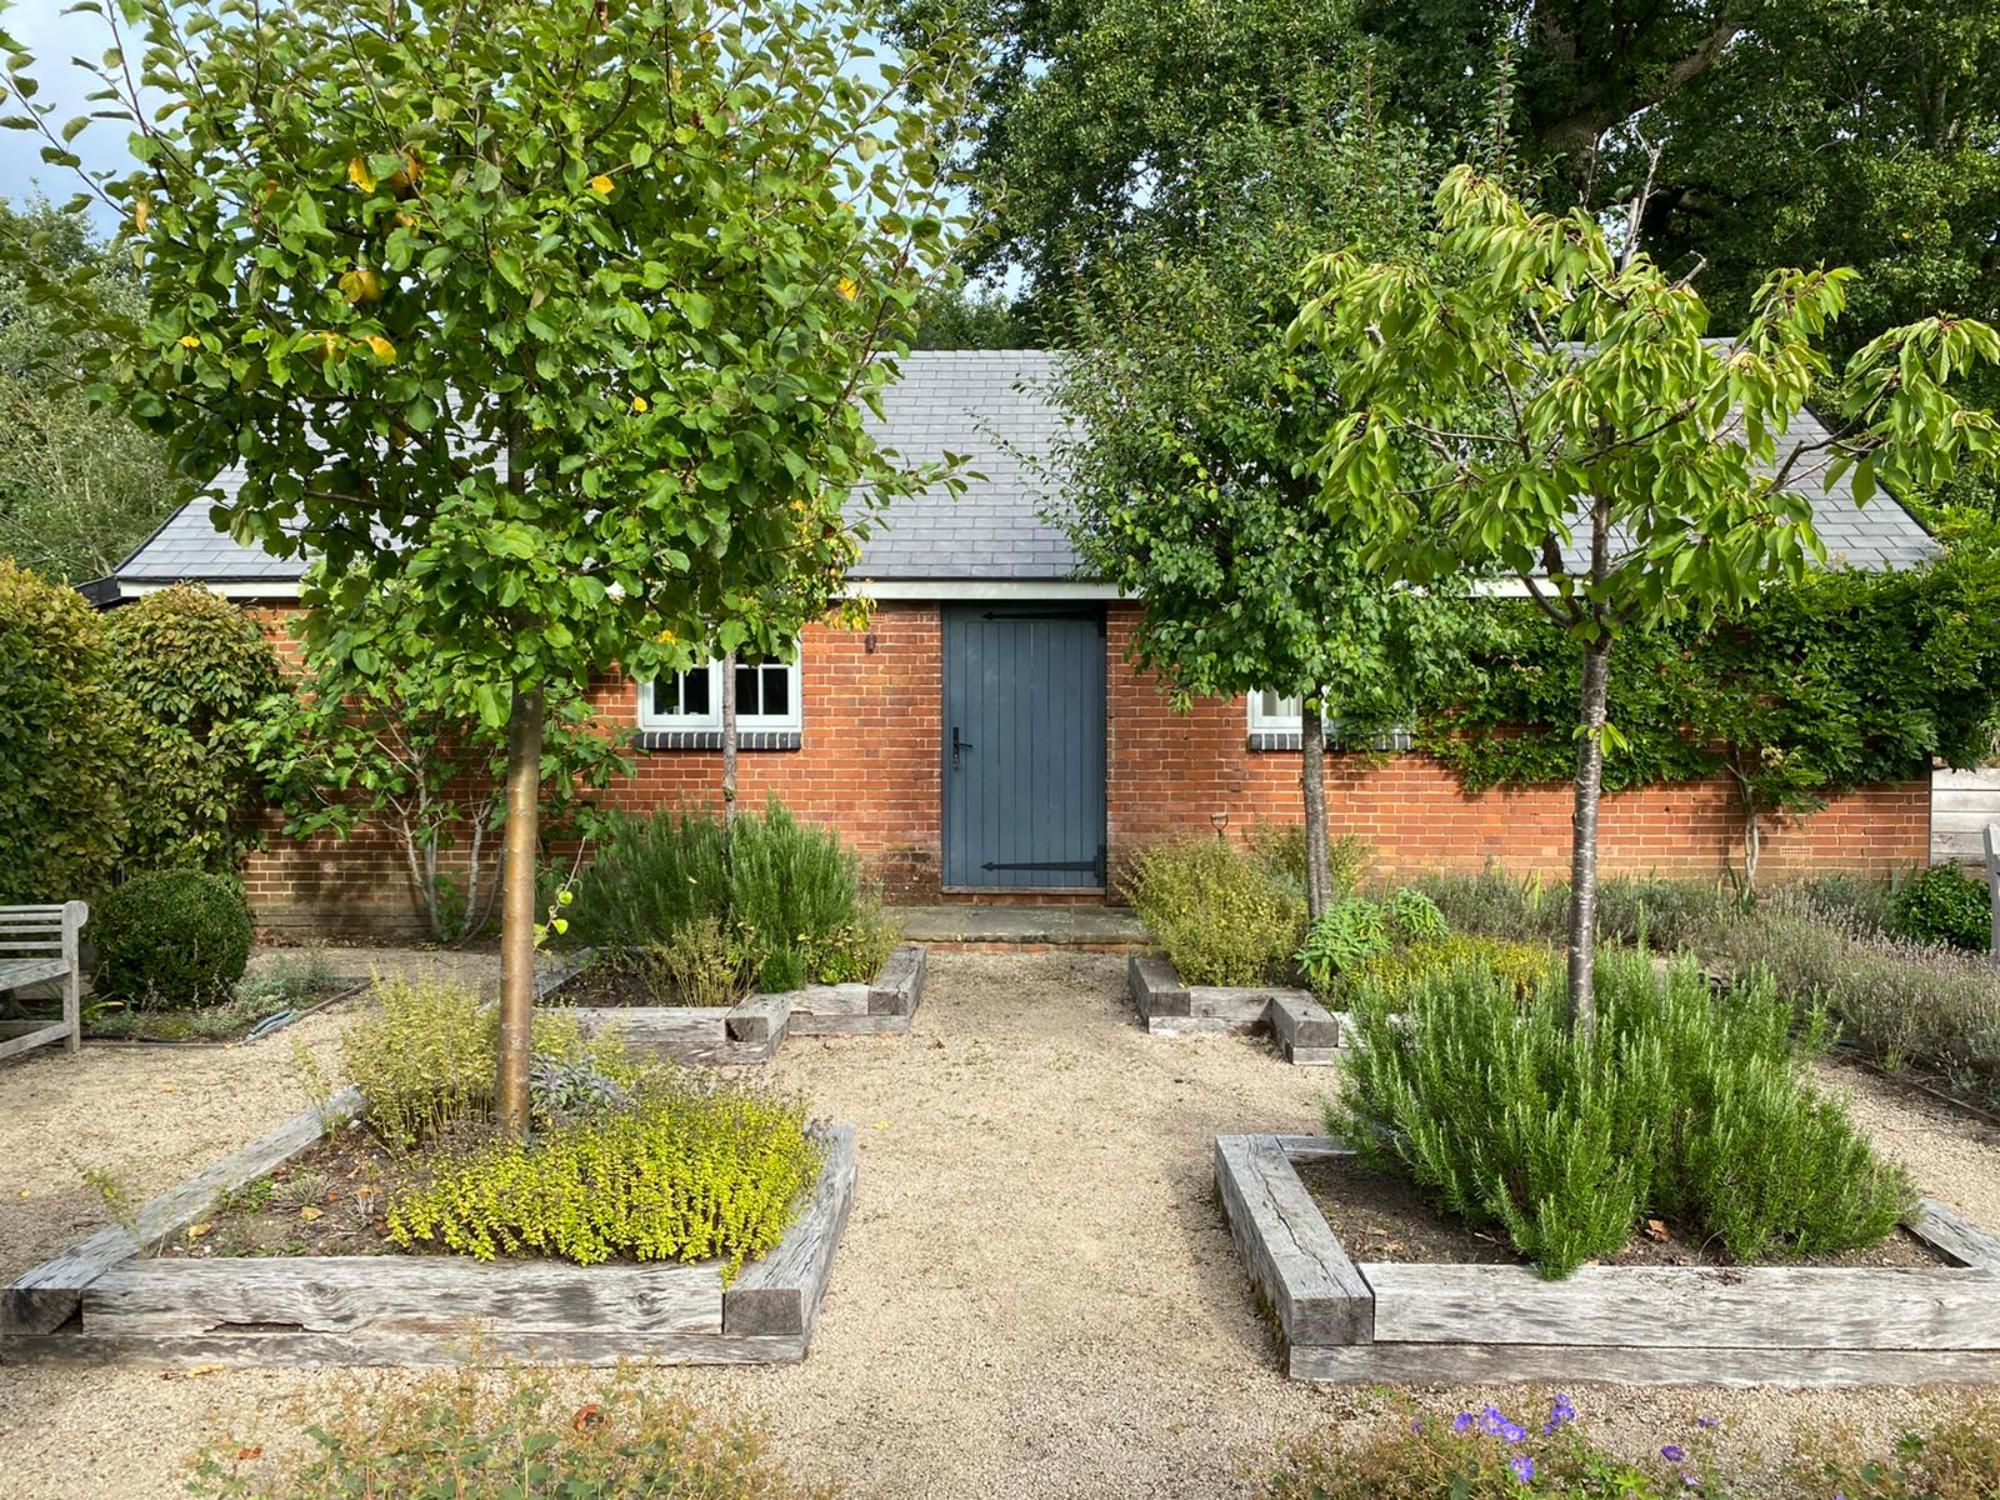 Self-Catering in England holidays at Cool Places